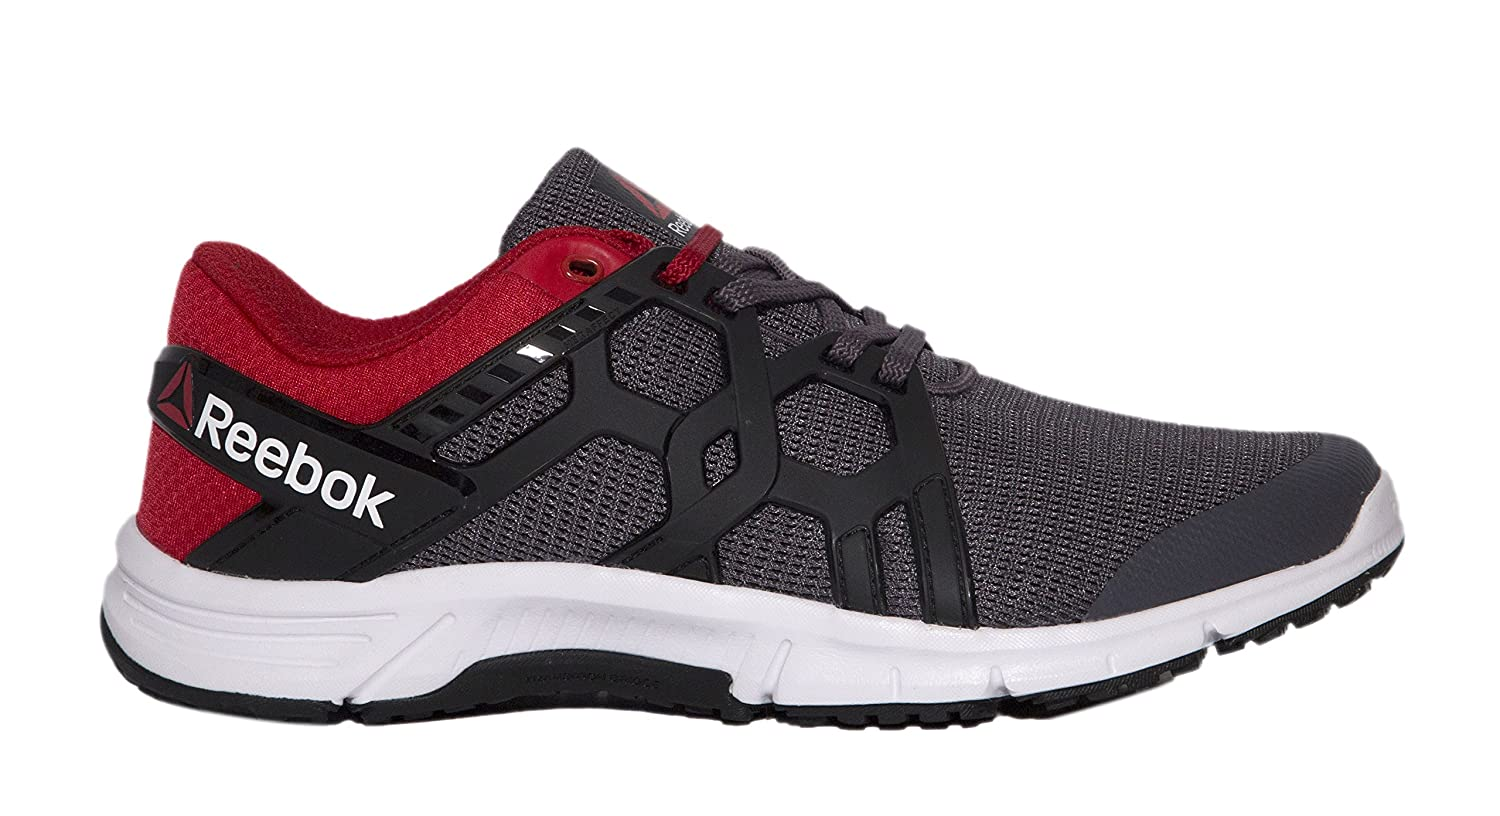 956a9e49eacee8 Reebok Men s Gusto Run Ash Grey Red Rush Wht Blk Running Shoes-8 UK India  (42 EU) (9 US) (BS6965)  Buy Online at Low Prices in India - Amazon.in